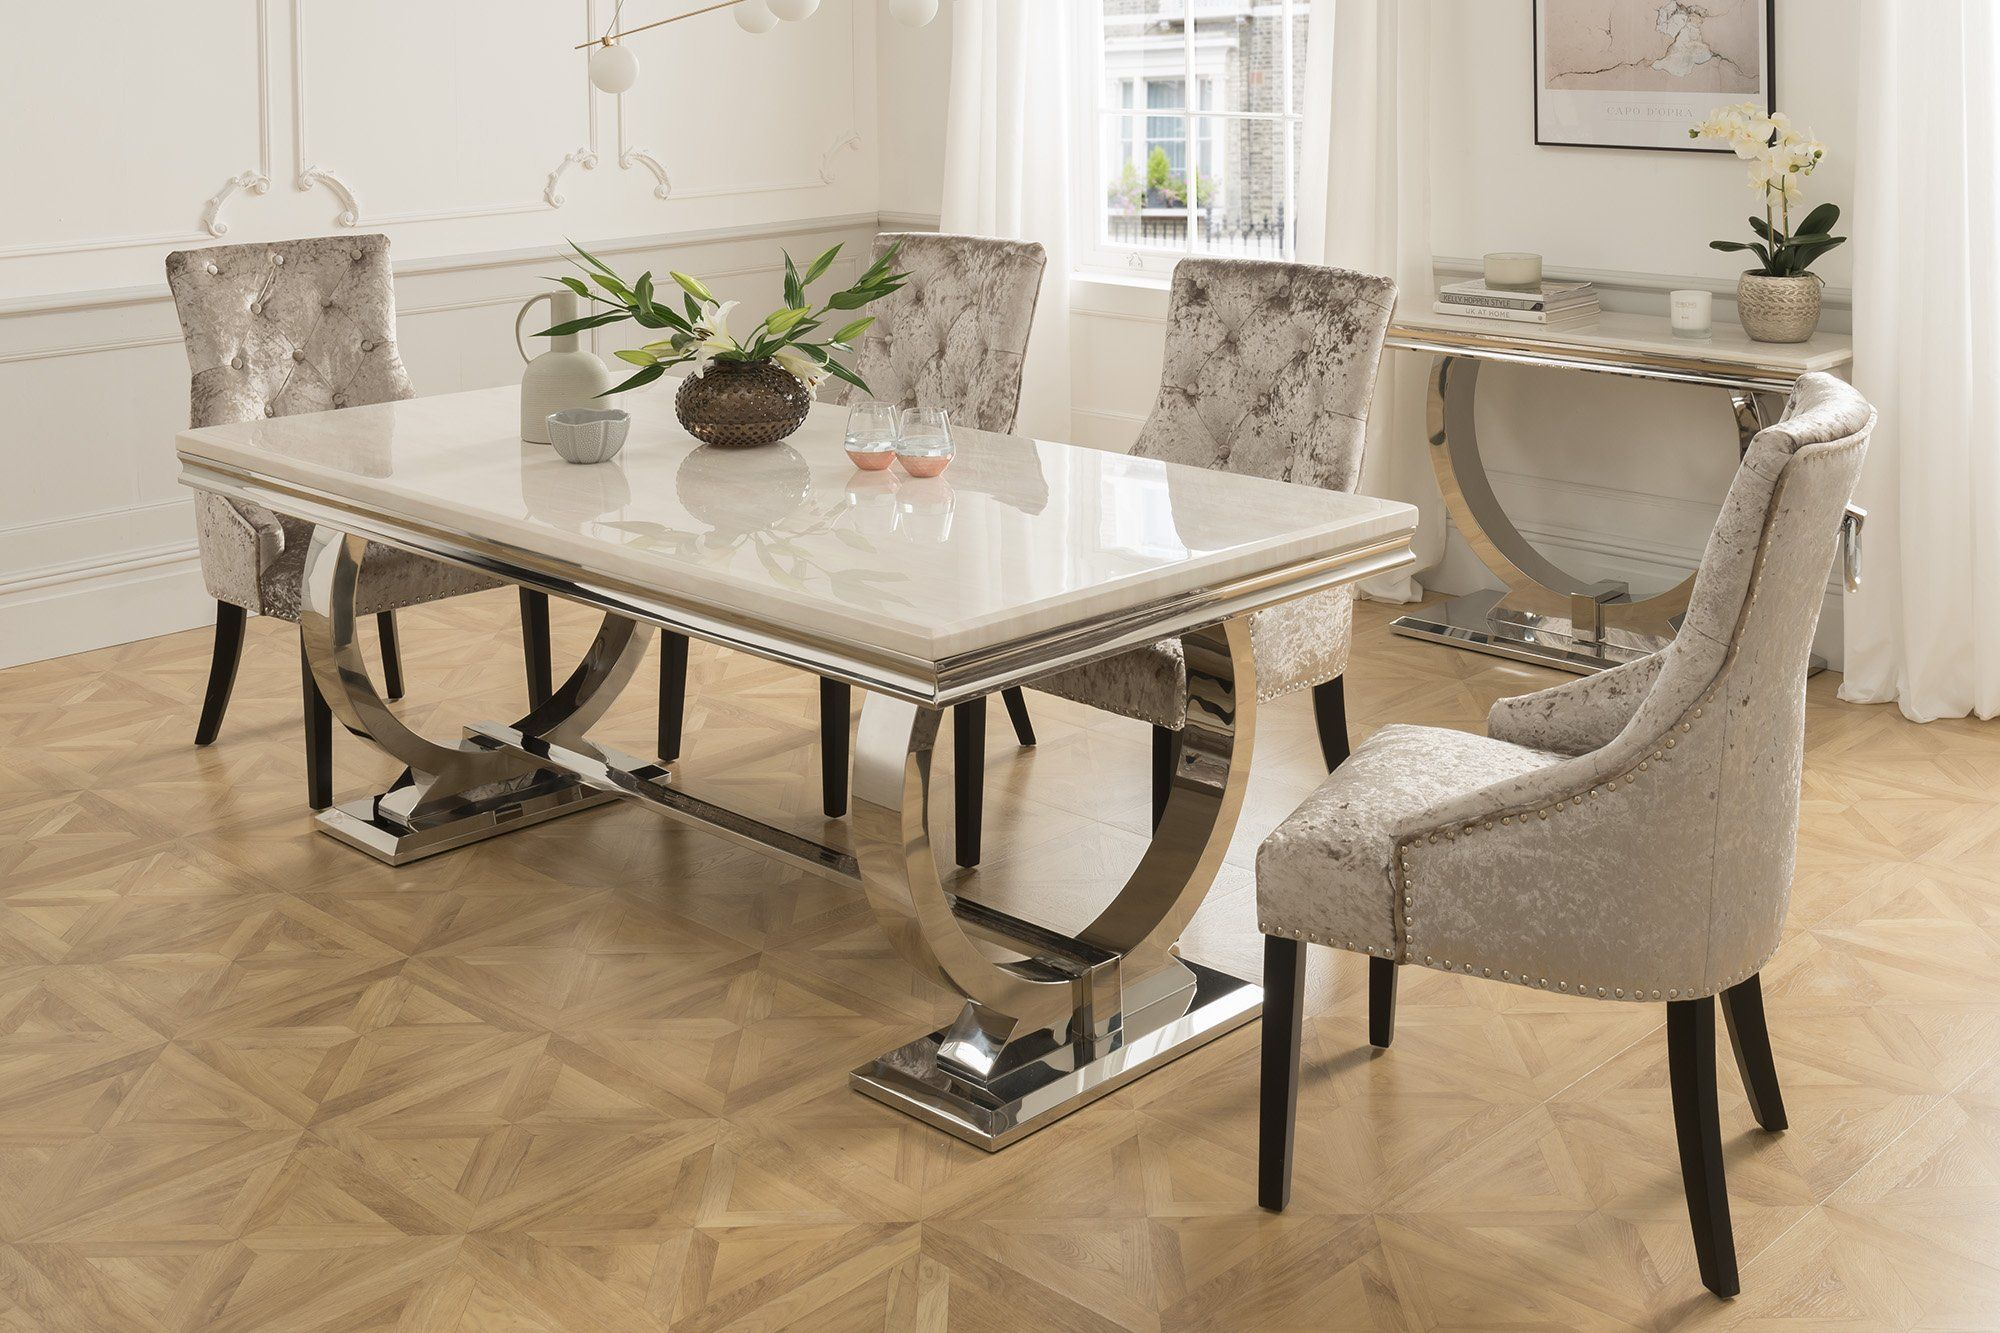 Featured Brasil Sandiego Com In 2020 Dining Table Marble